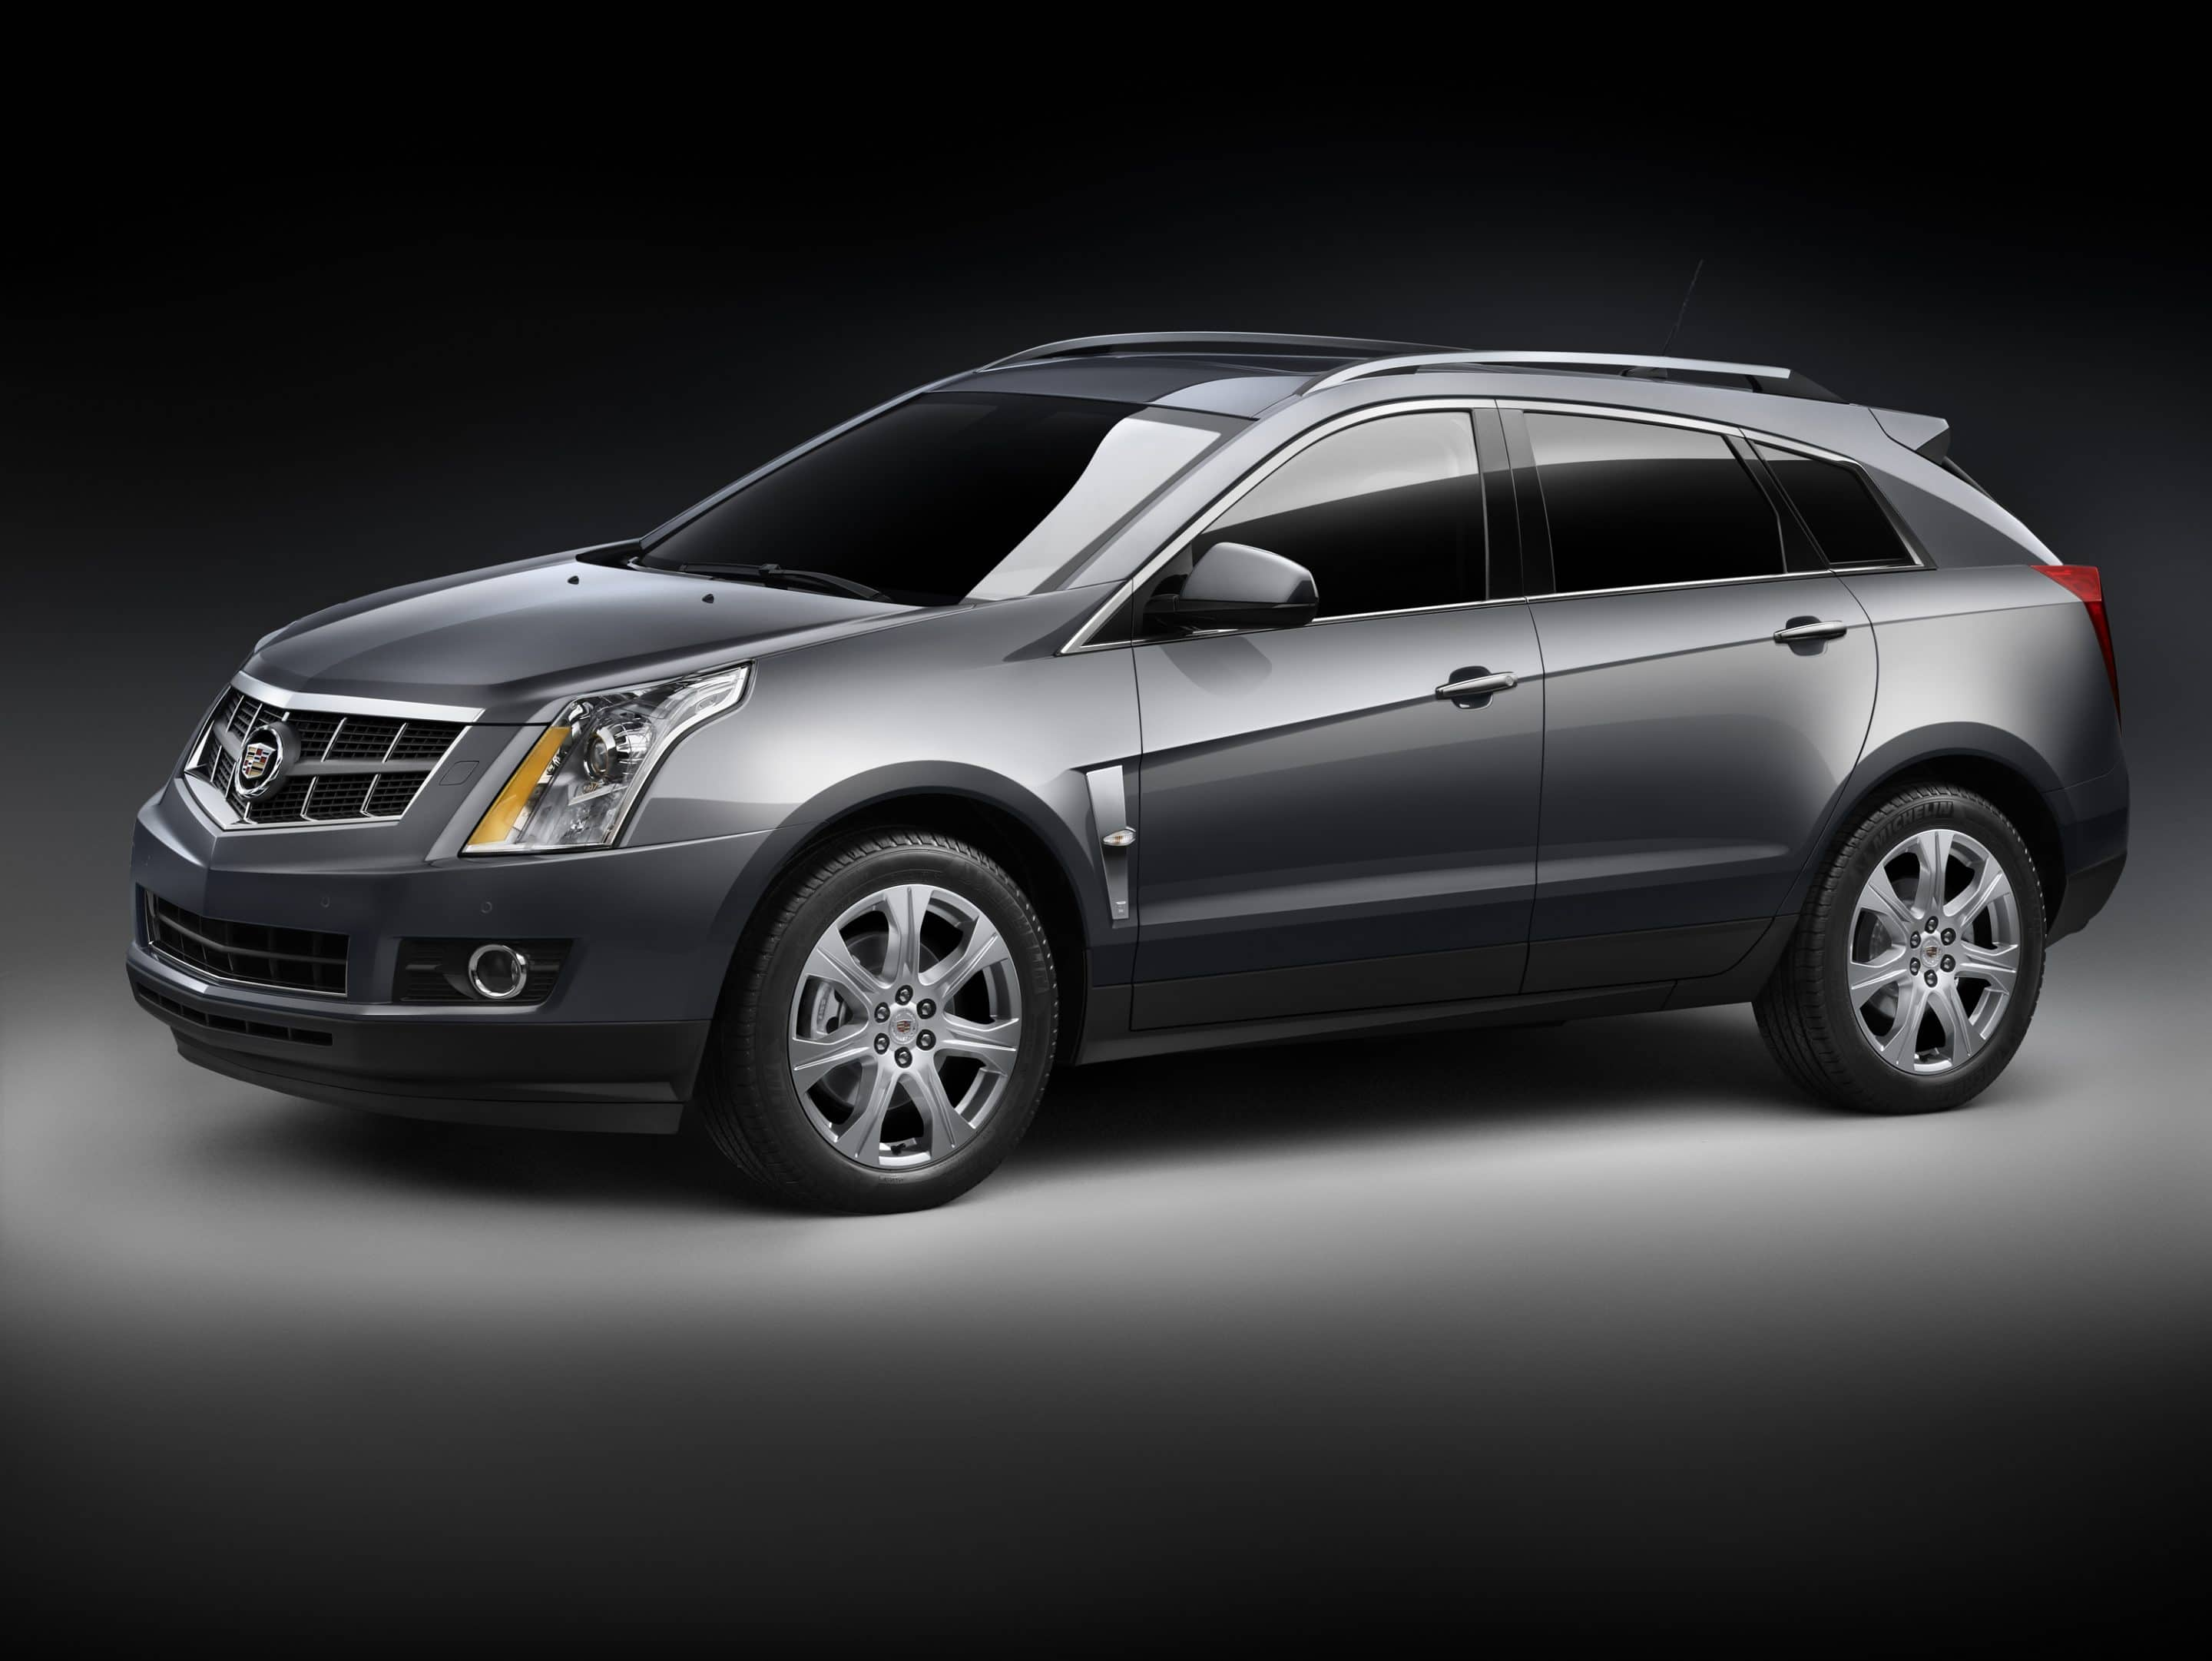 Sneak Peak: 2010 Cadillac SRX